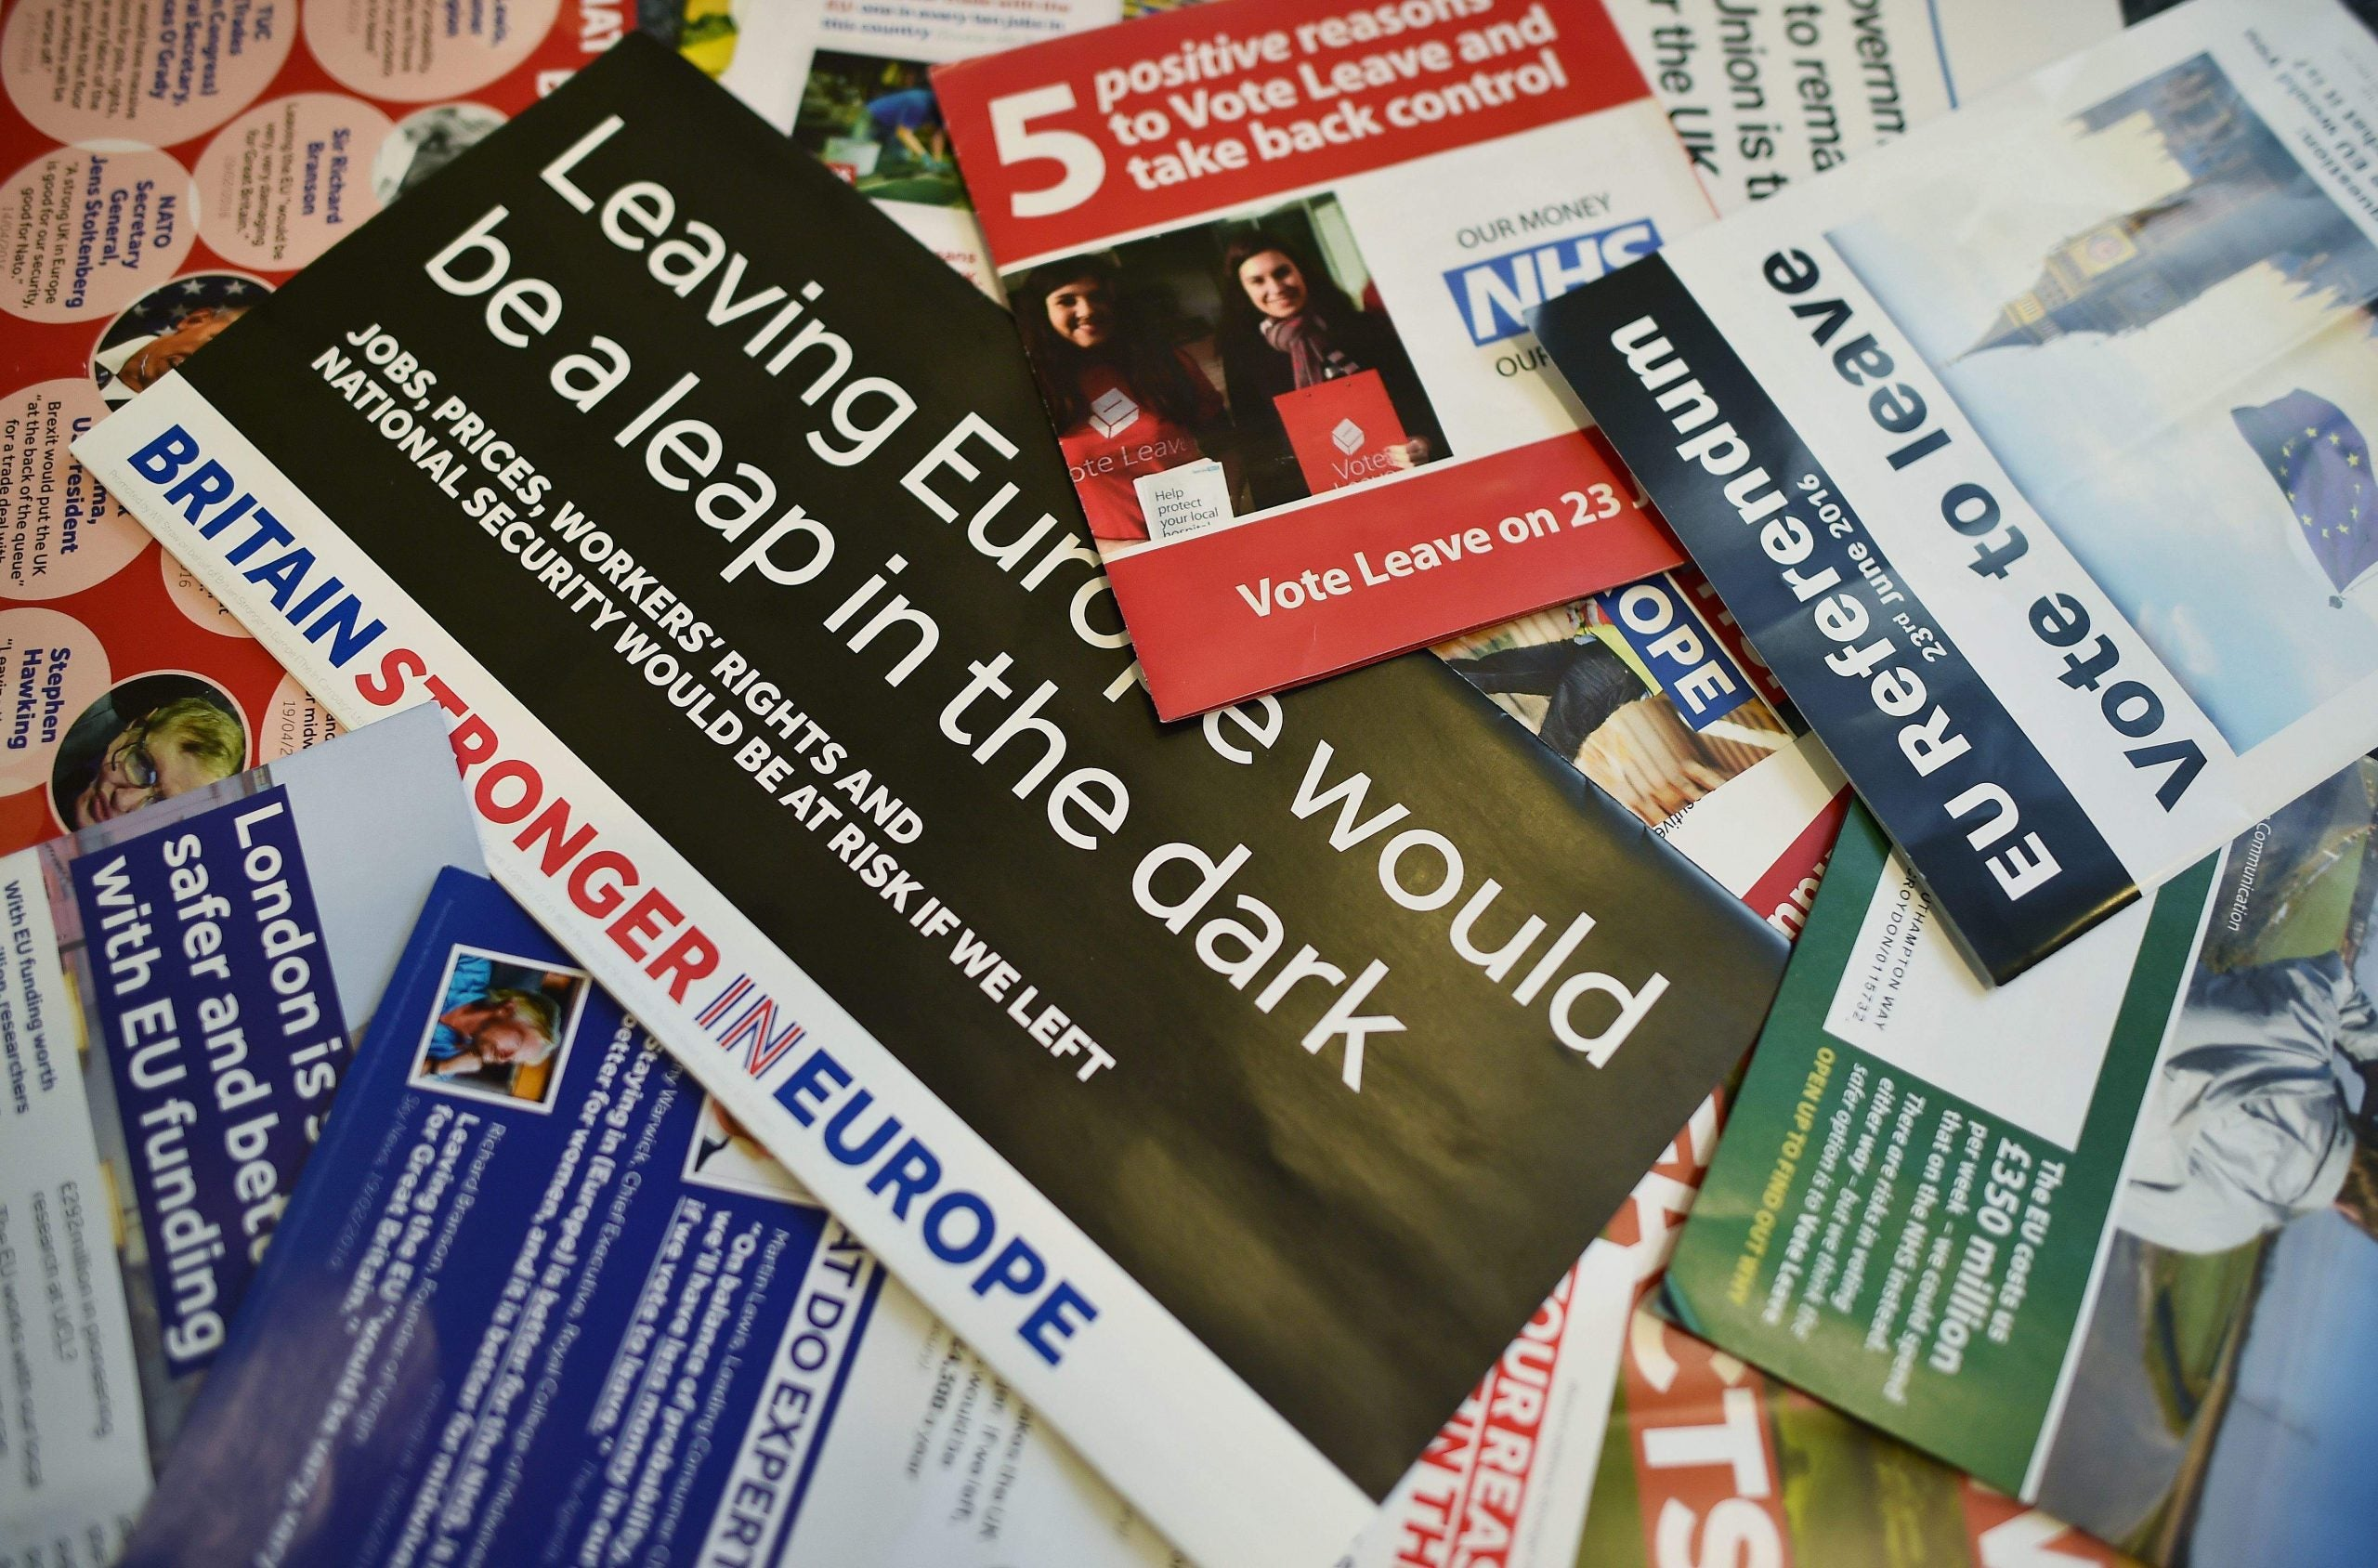 A shift towards Brexit? Don't bet on it